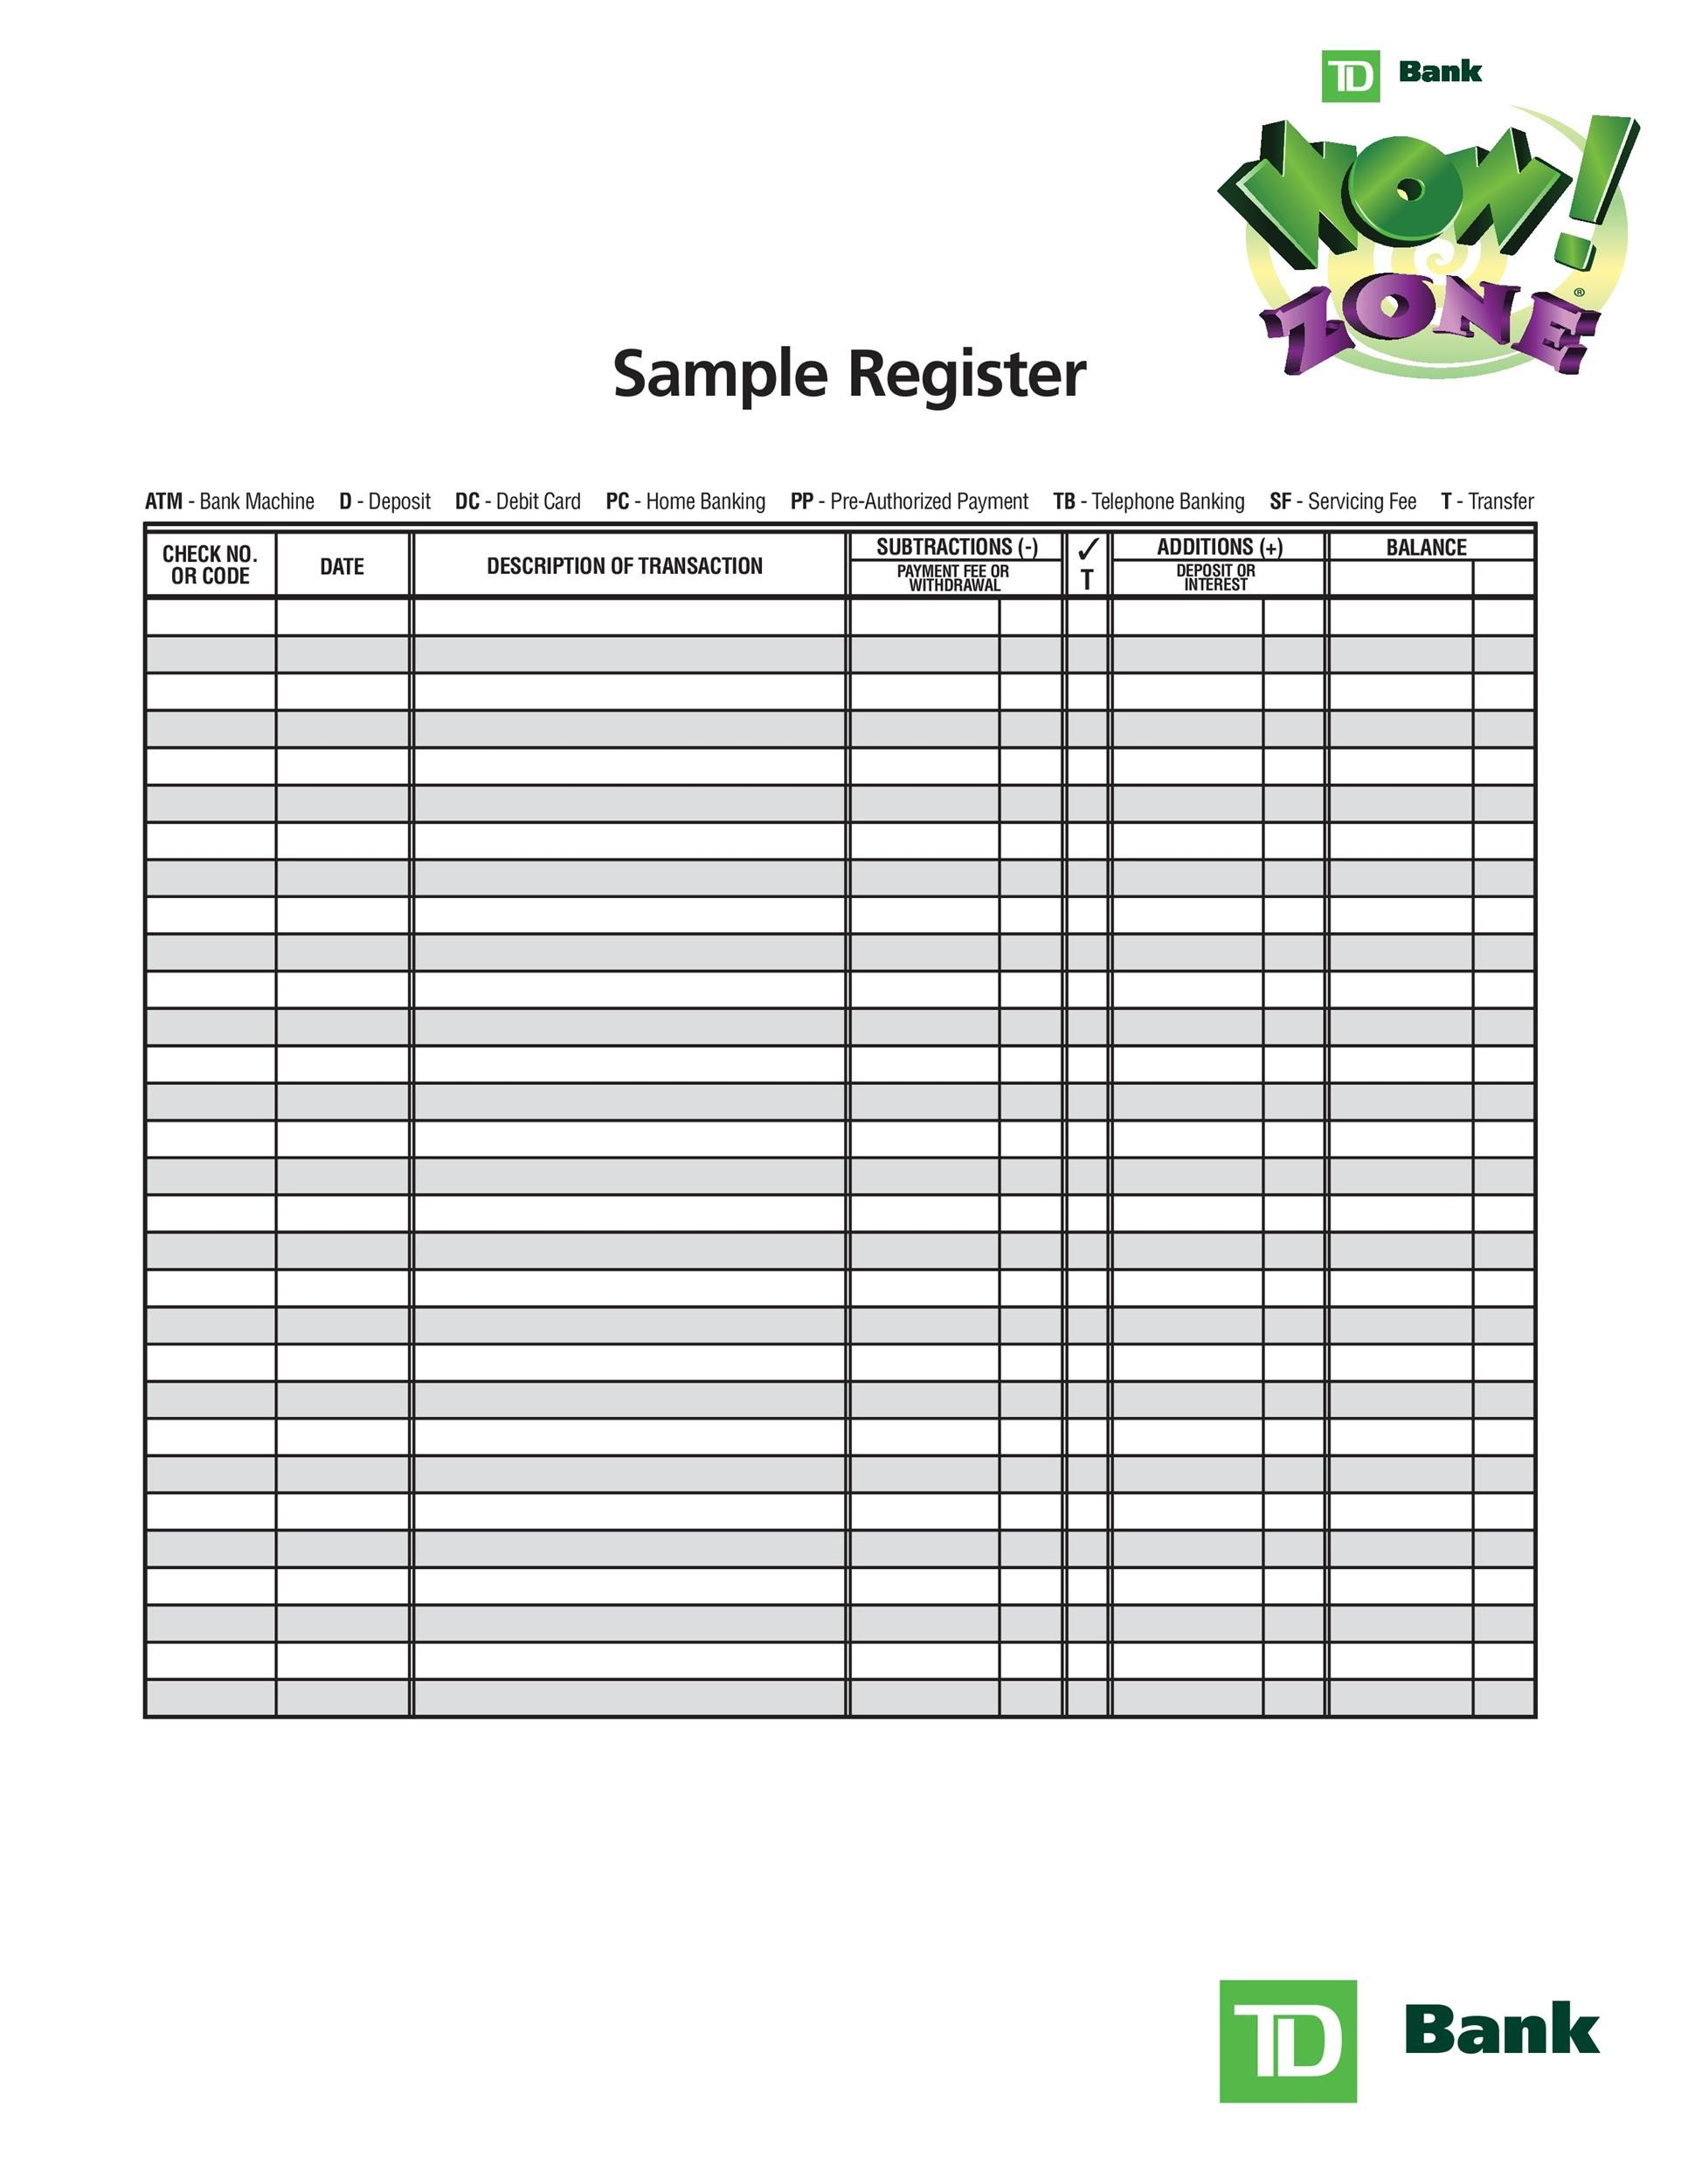 image relating to Printable Checkbook Ledger identify 37 Checkbook Sign up Templates [100% Cost-free, Printable] ᐅ